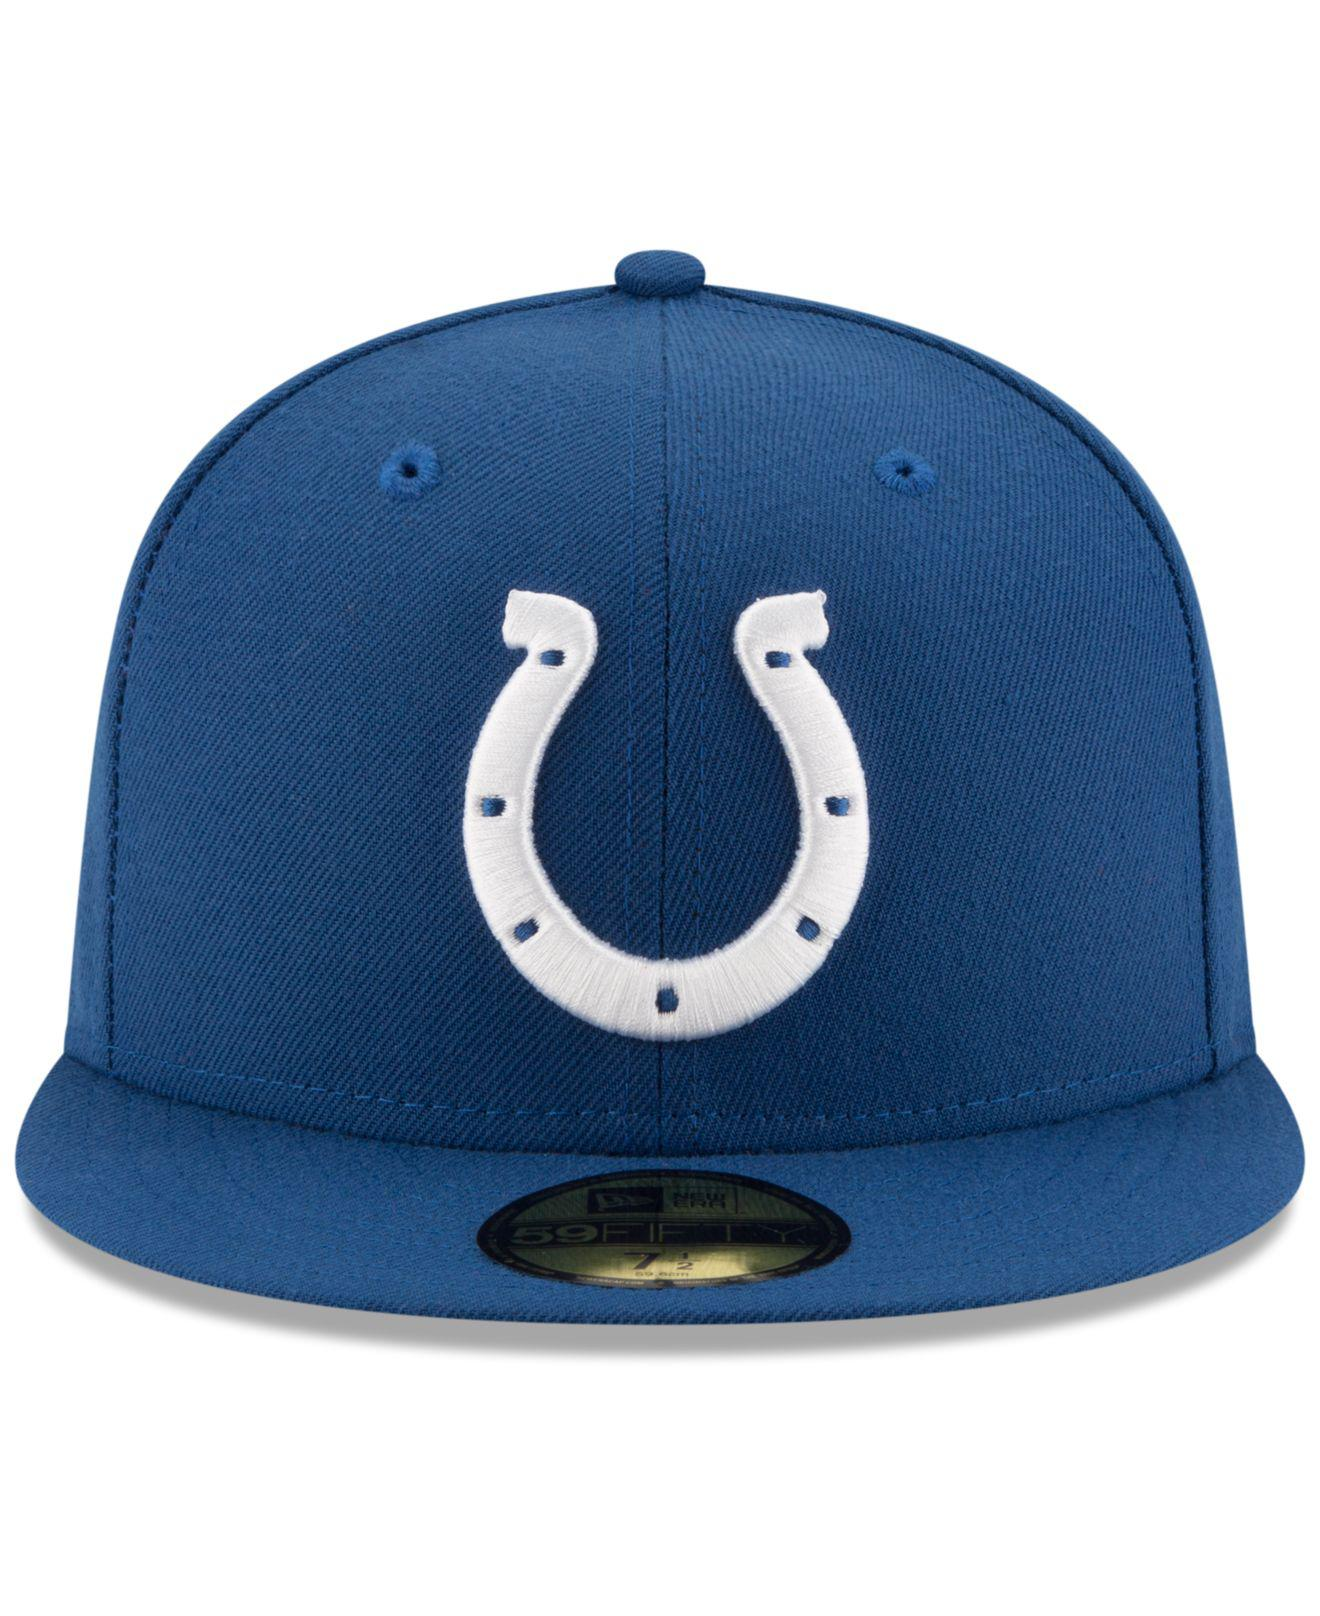 hot sales 79f7f 5ab3d Lyst - KTZ Indianapolis Colts Team Basic 59fifty Cap in Blue for Men